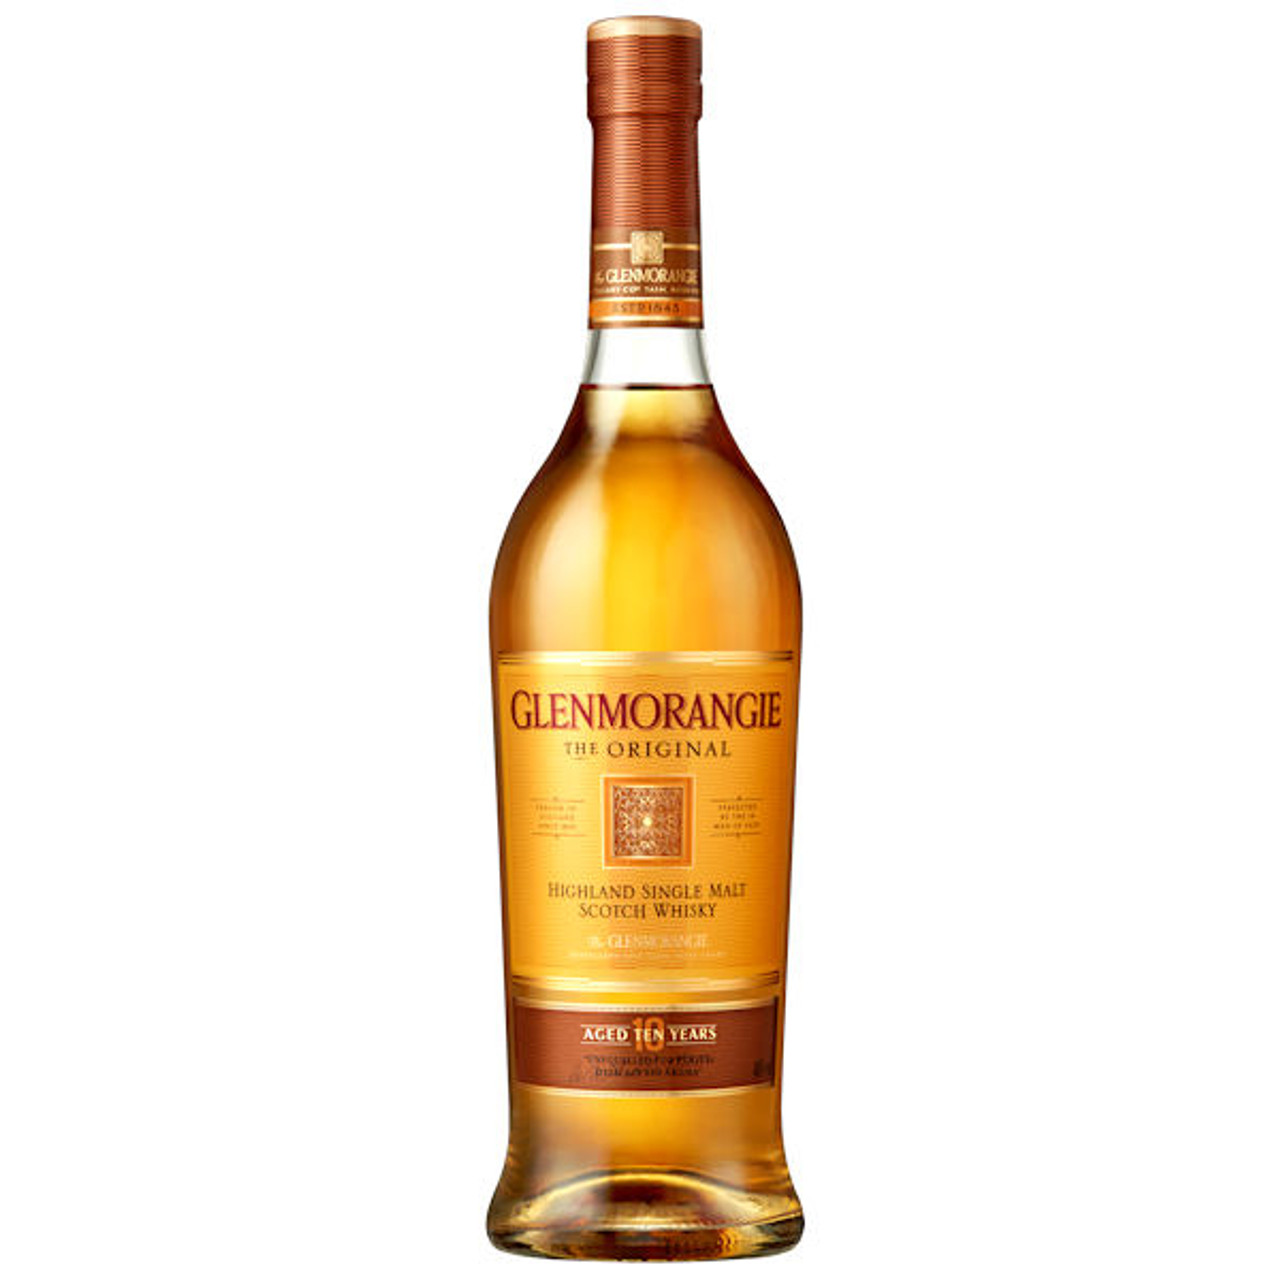 Glenmorangie The Original 10 Year Old Highland Single Malt Scotch 750ml